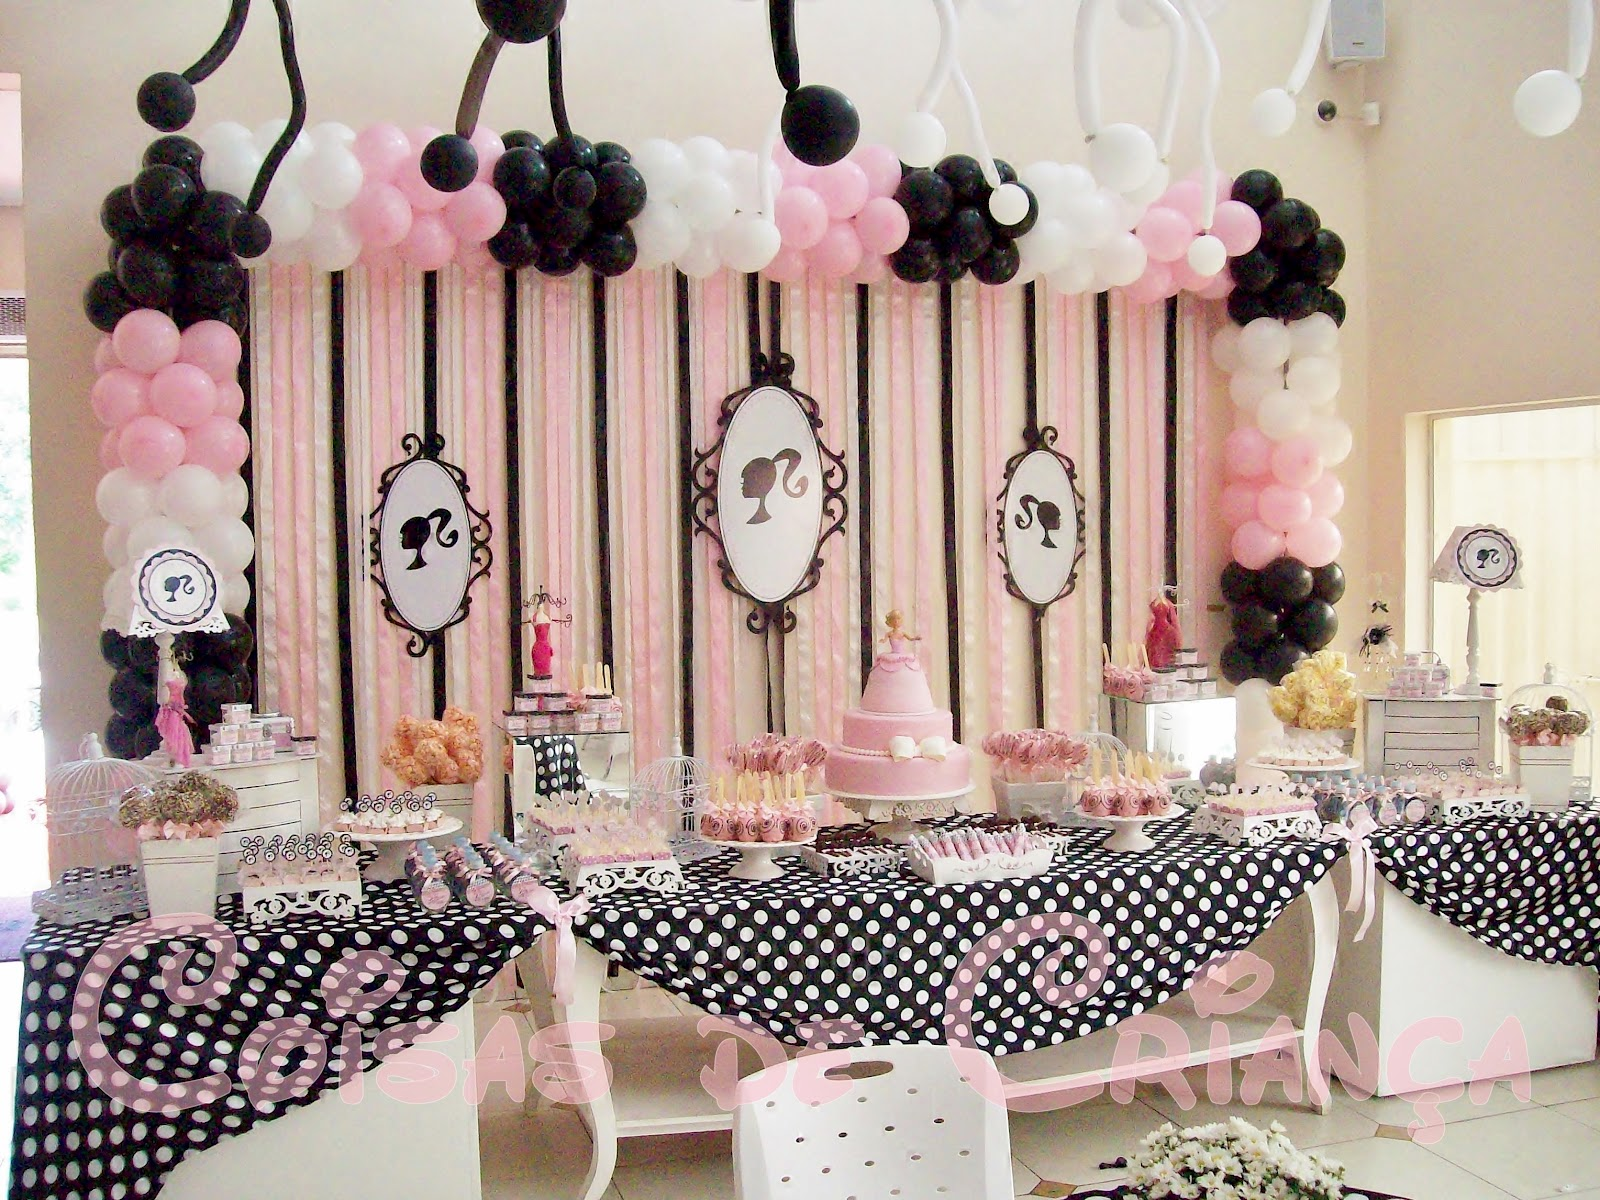 decorations-for-glamorous-party-for-girls-captain-amelia-pussy